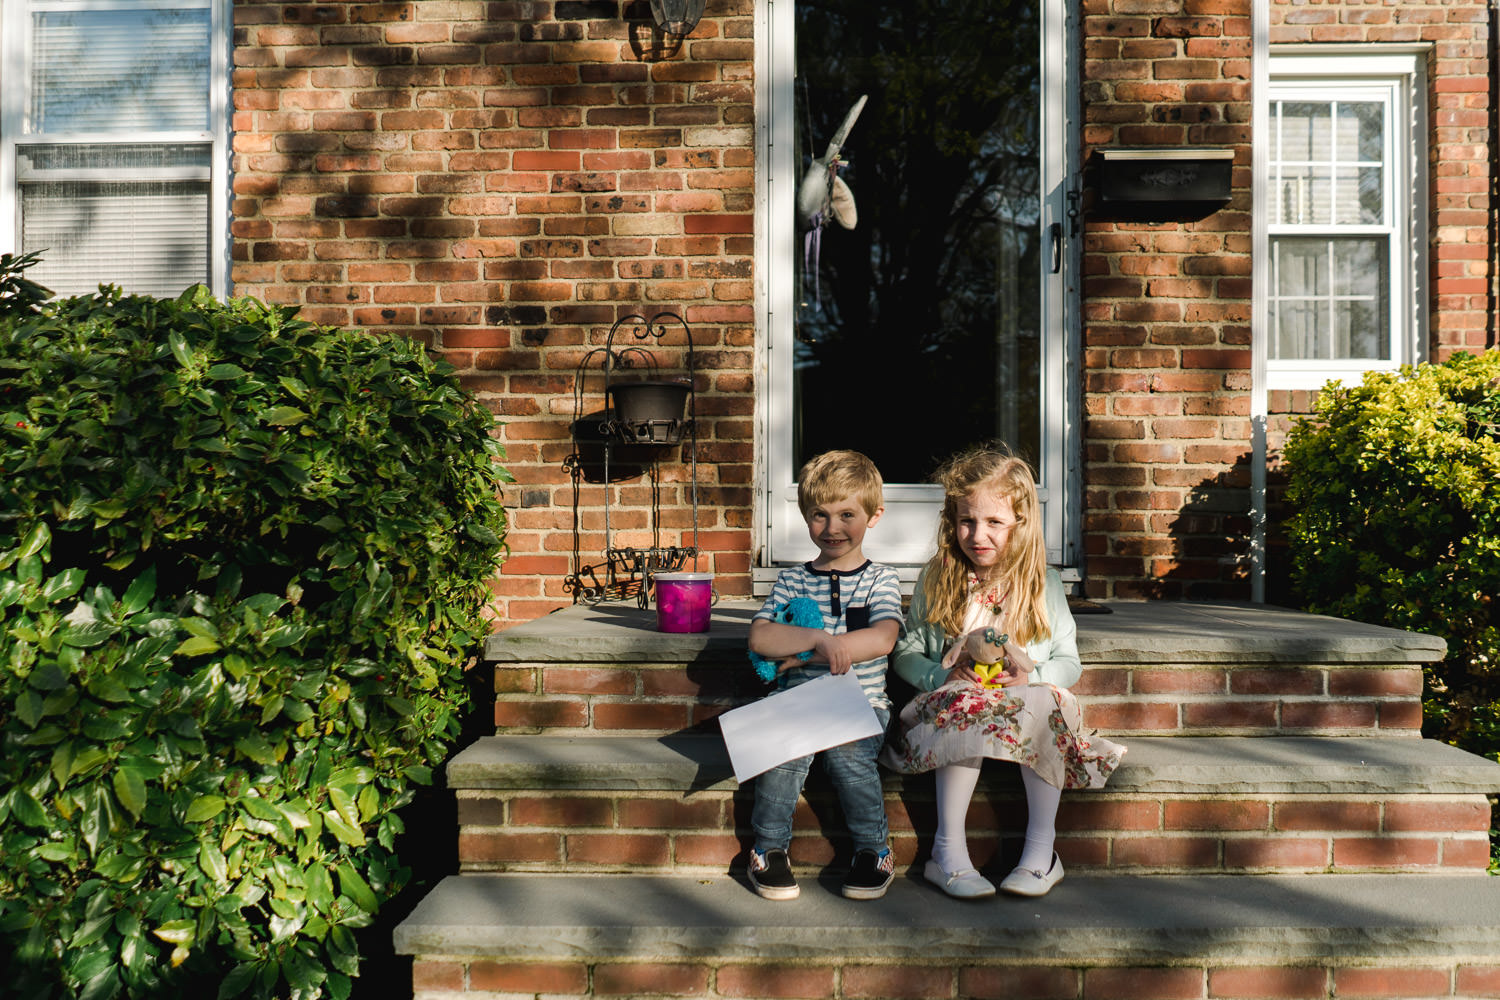 Two children sit on a sunny stoop.